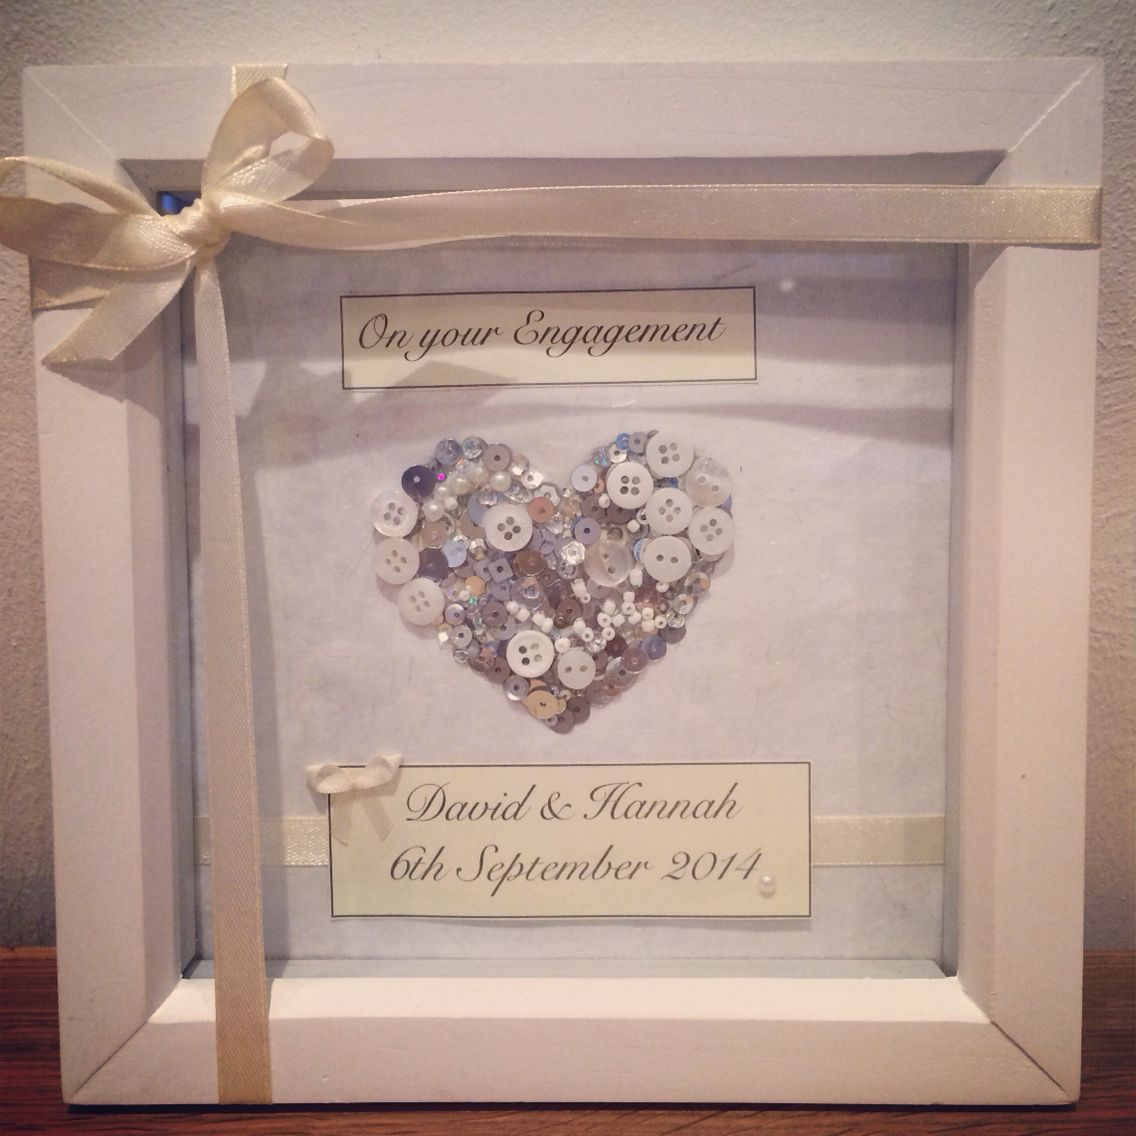 Engagement personalised frame | Personalised Frames Facebook page ...